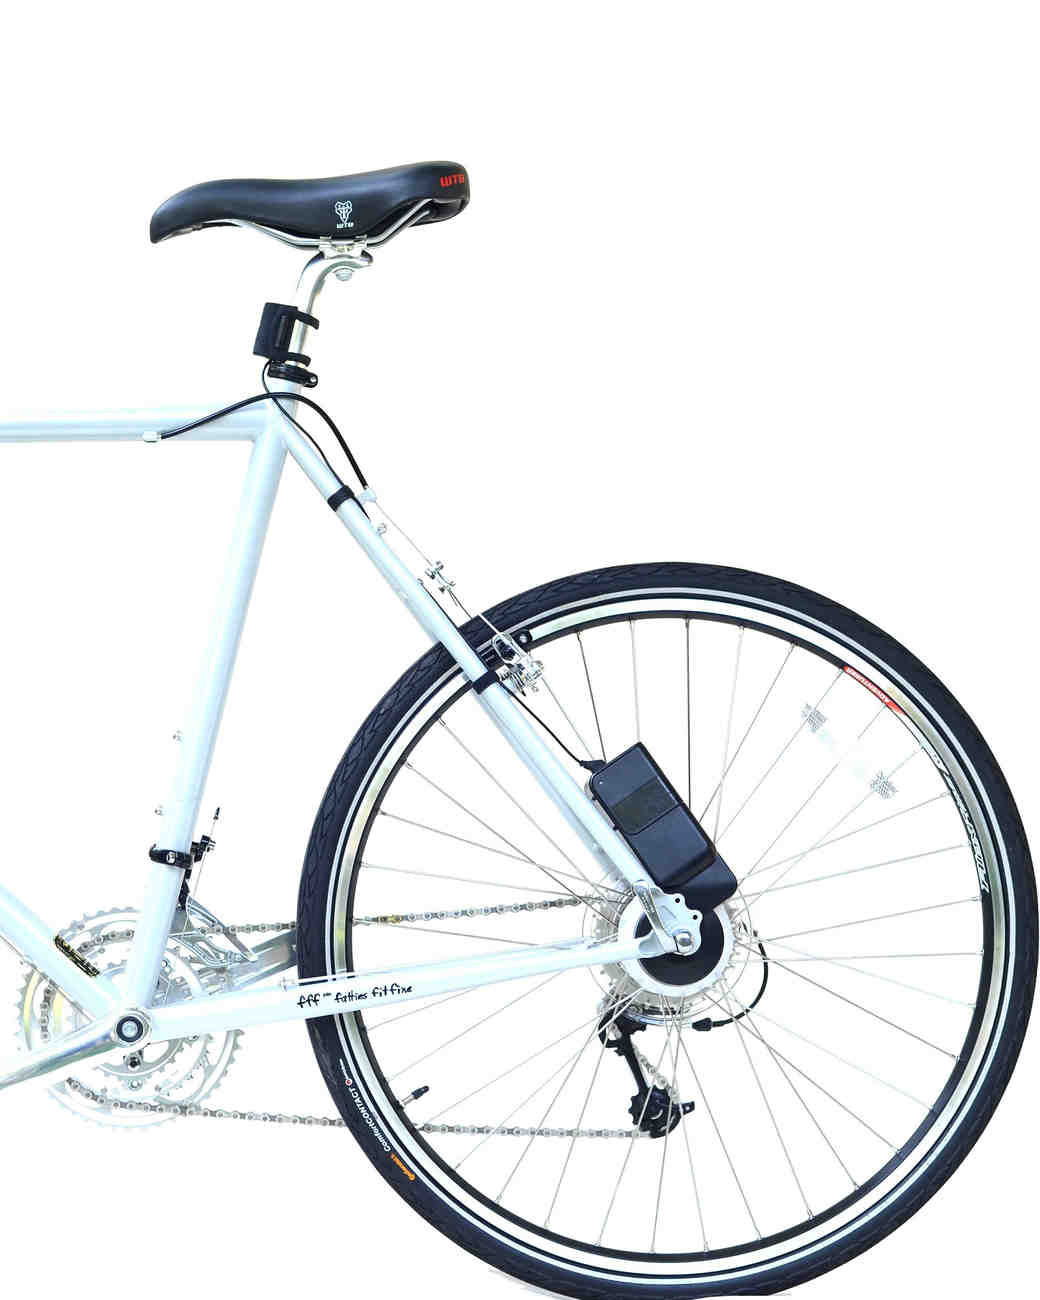 fathers-gift-guide-tech-siva-cycle-charger-bike-0515.jpg